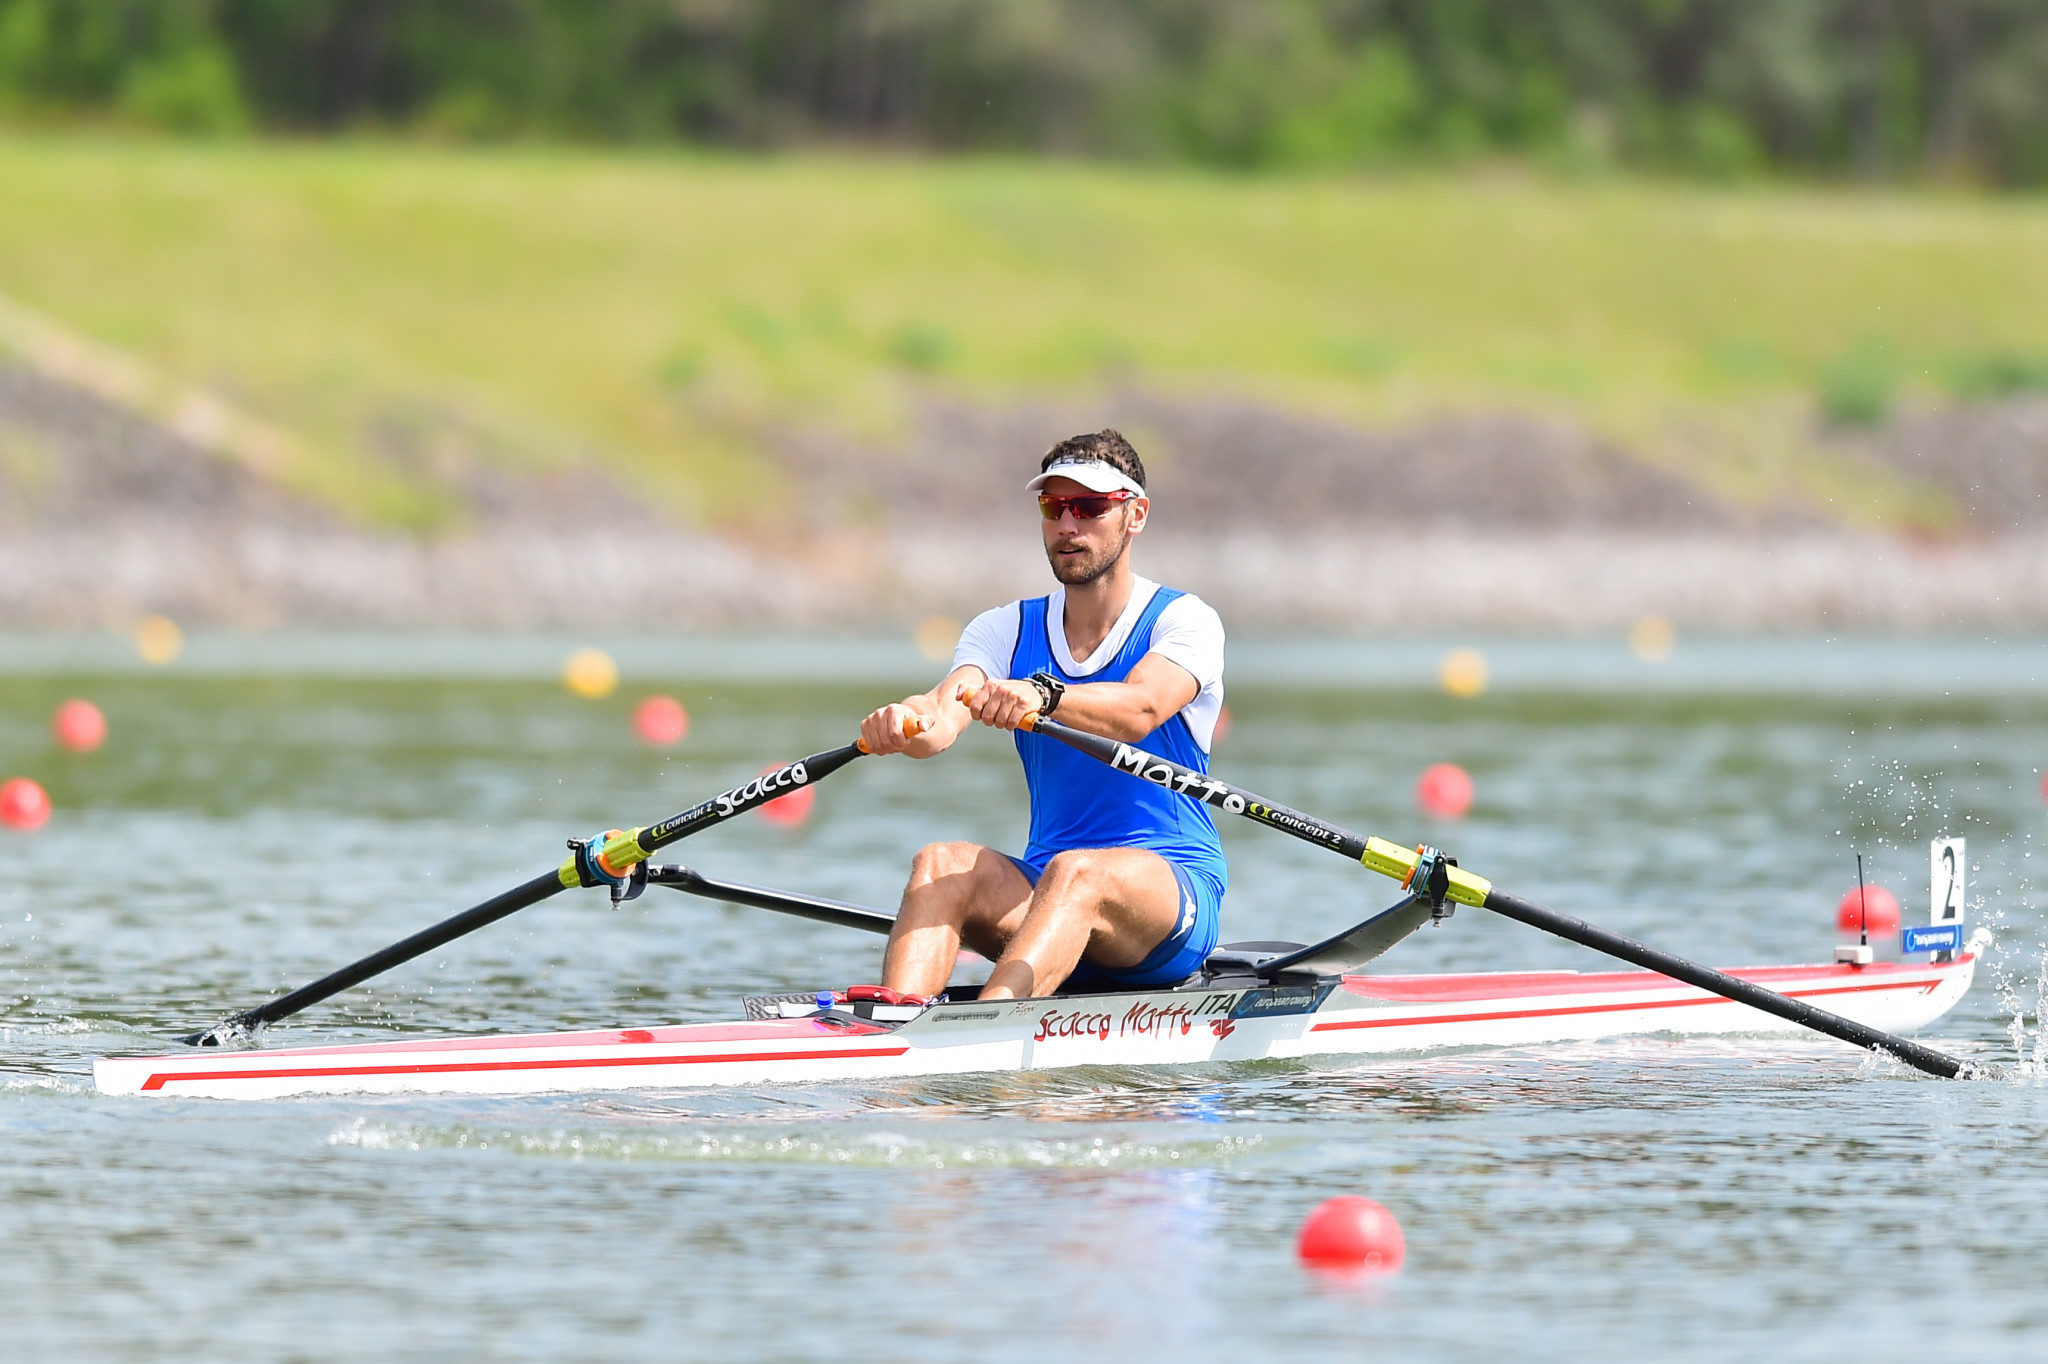 Italy's Martini wins men's solo gold at World Rowing Coastal Championships